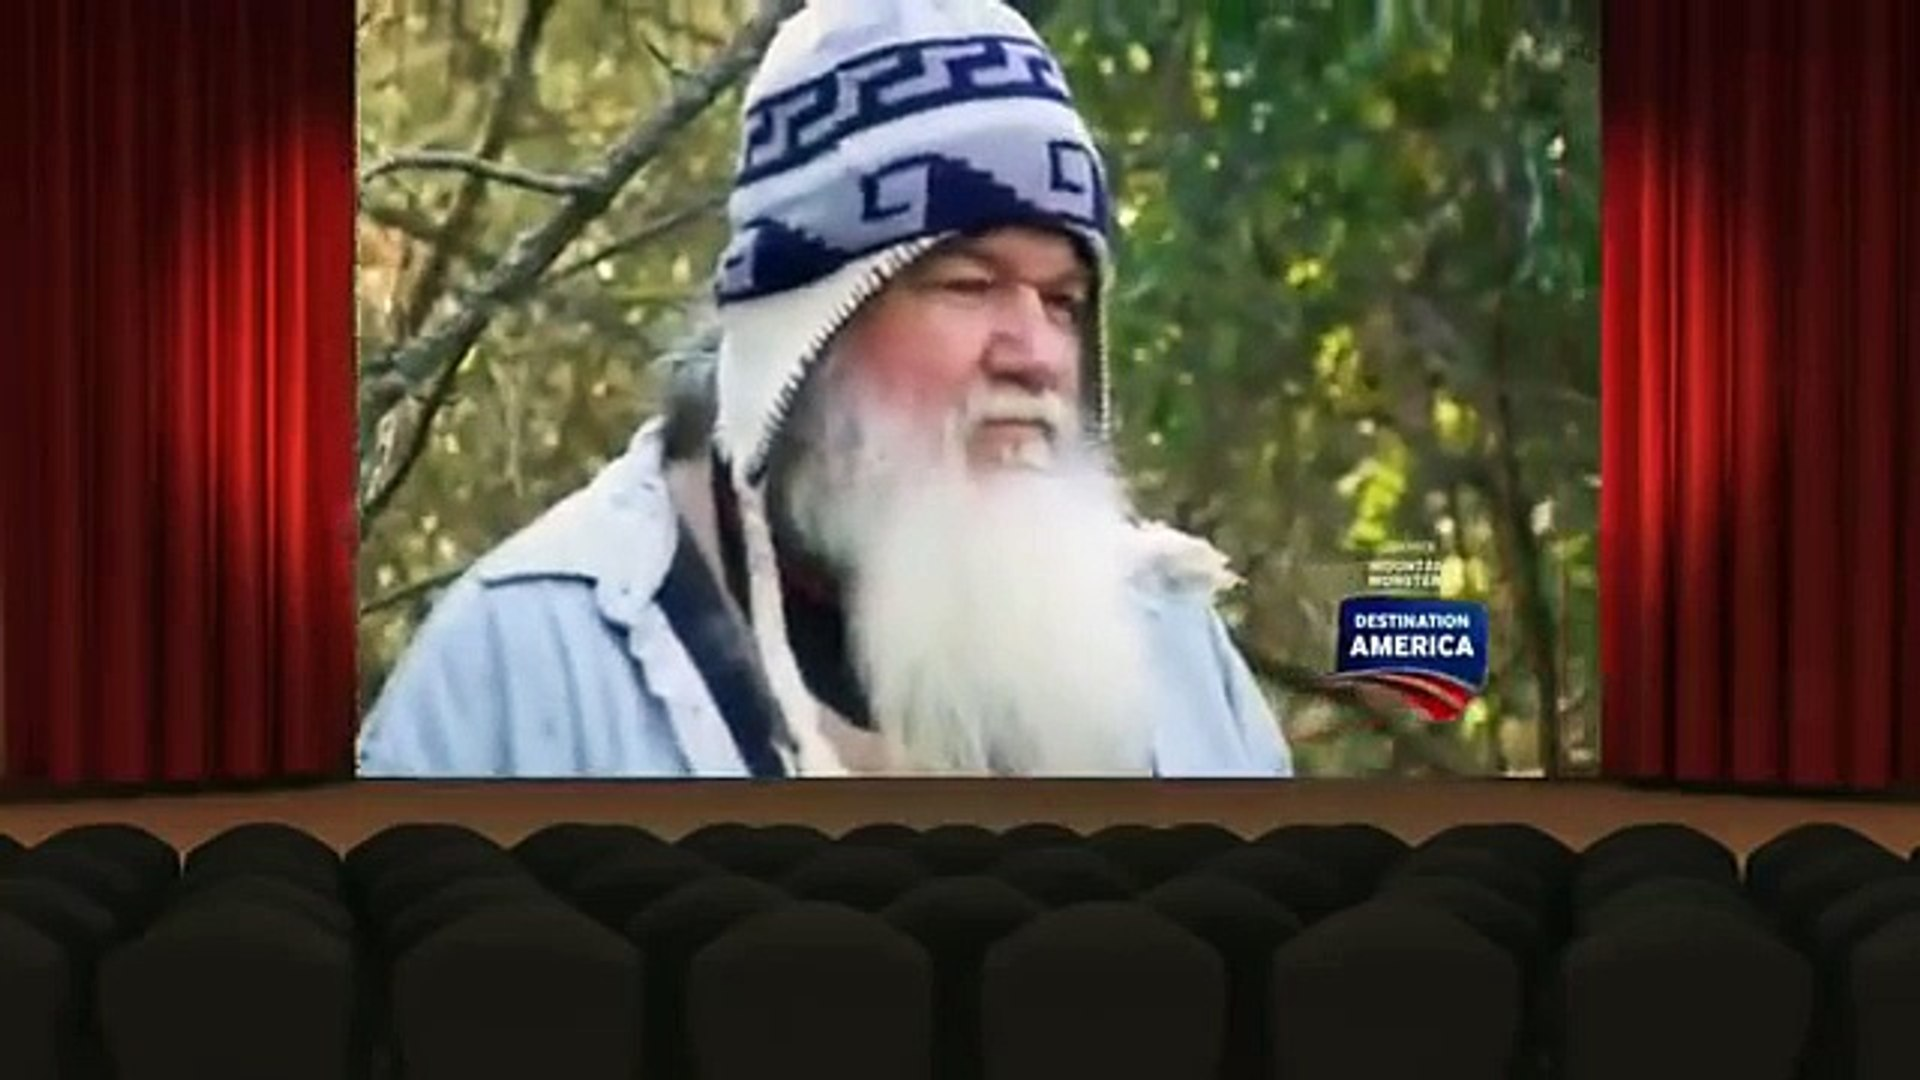 Mountain Monsters S02E11 Cave Creature of Greenbrier County